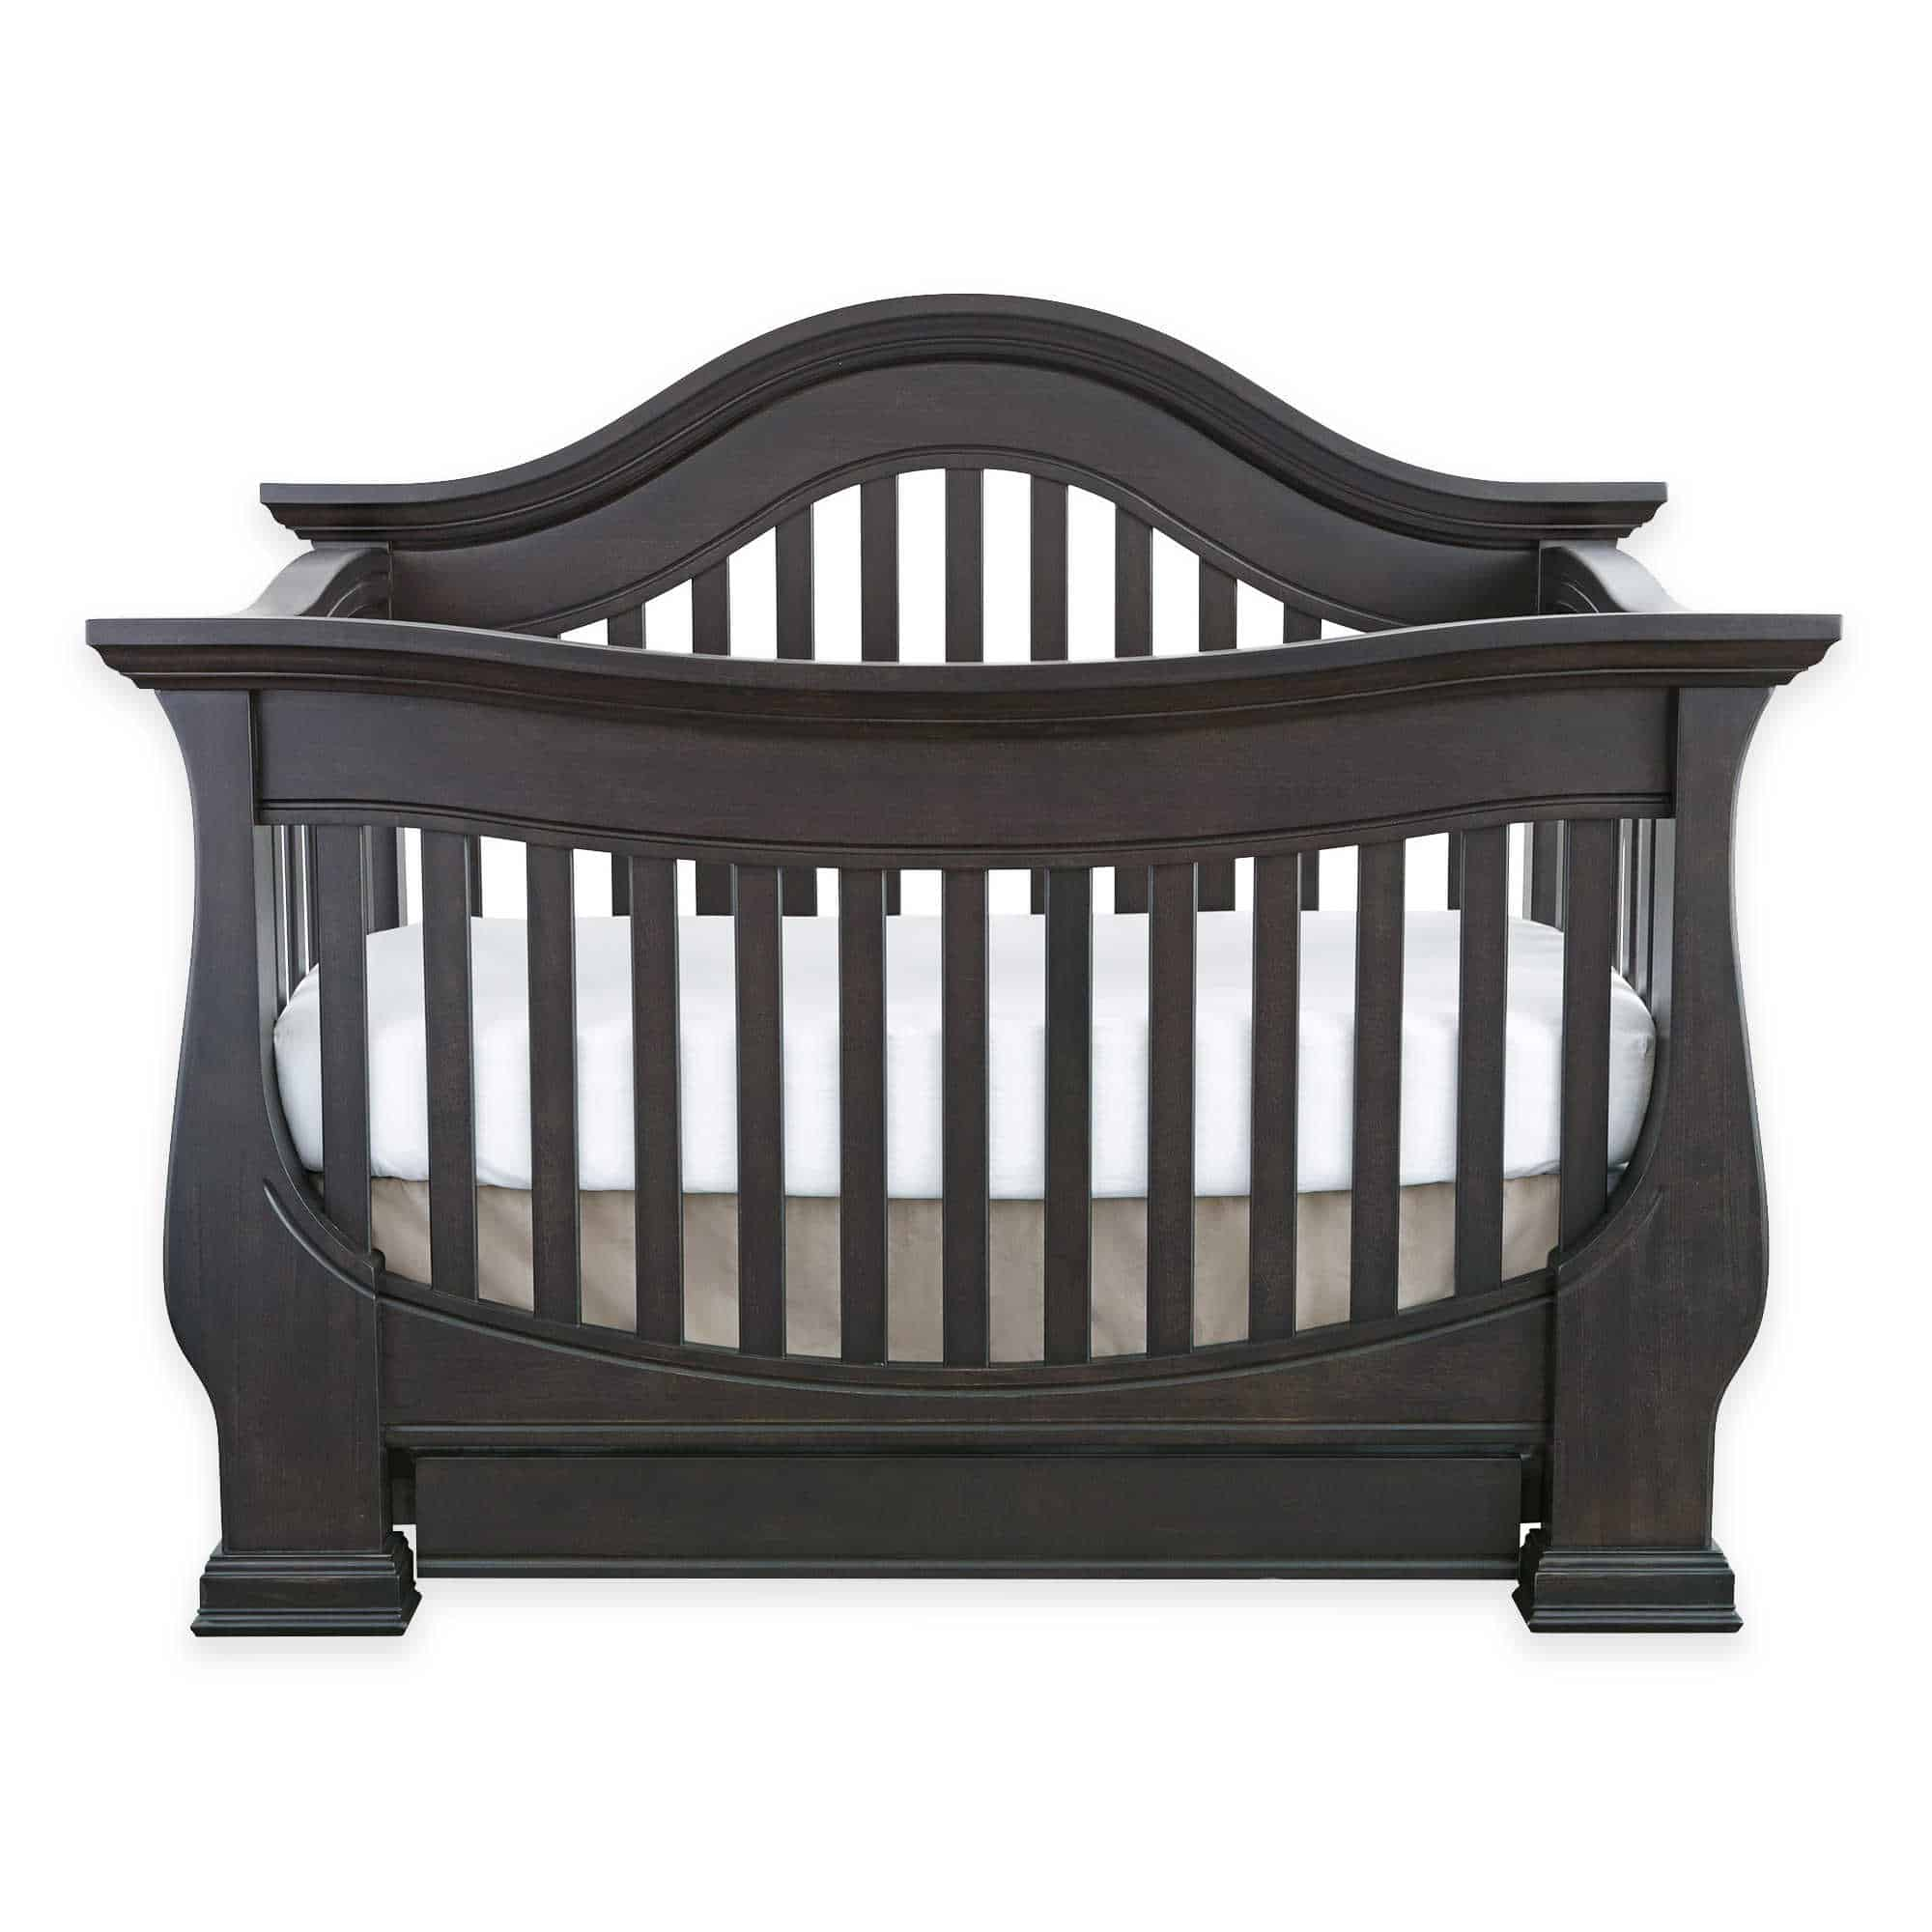 best size bear sheets of wool feather crib rug hanging spectacular blanket choosing full drawer a with area drawers mini radle wall make baby toys ideas decorating trendy nursery stuff cribs art changing pretty tables teddy bookshelf for babys your bed